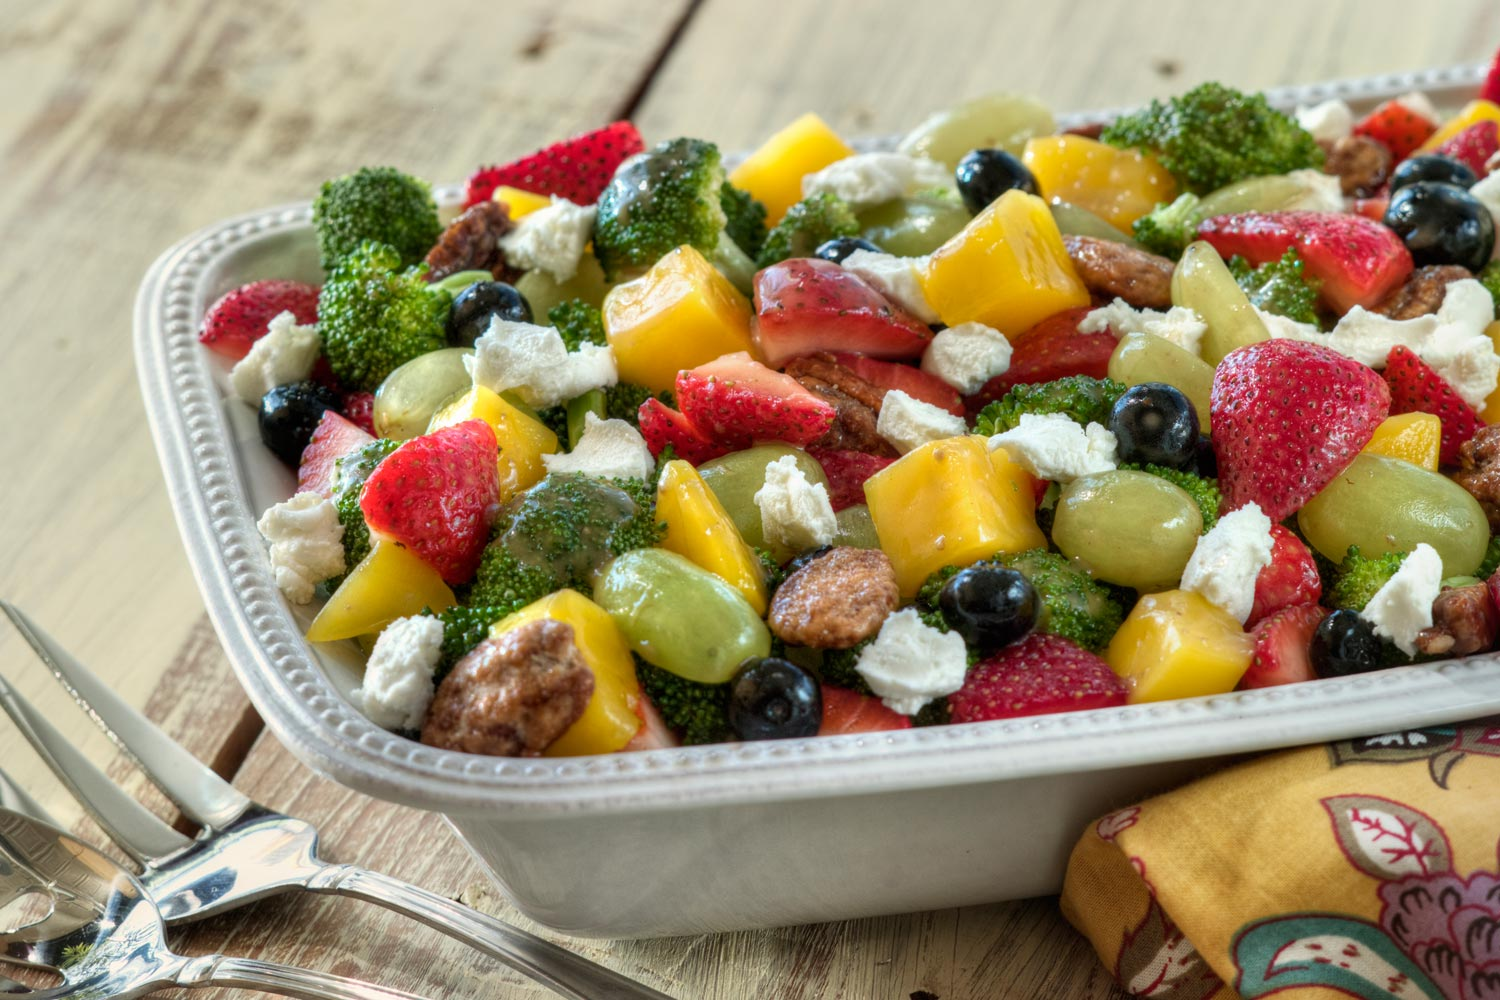 Summer Fruit And Broccoli Salad With Goat Cheese